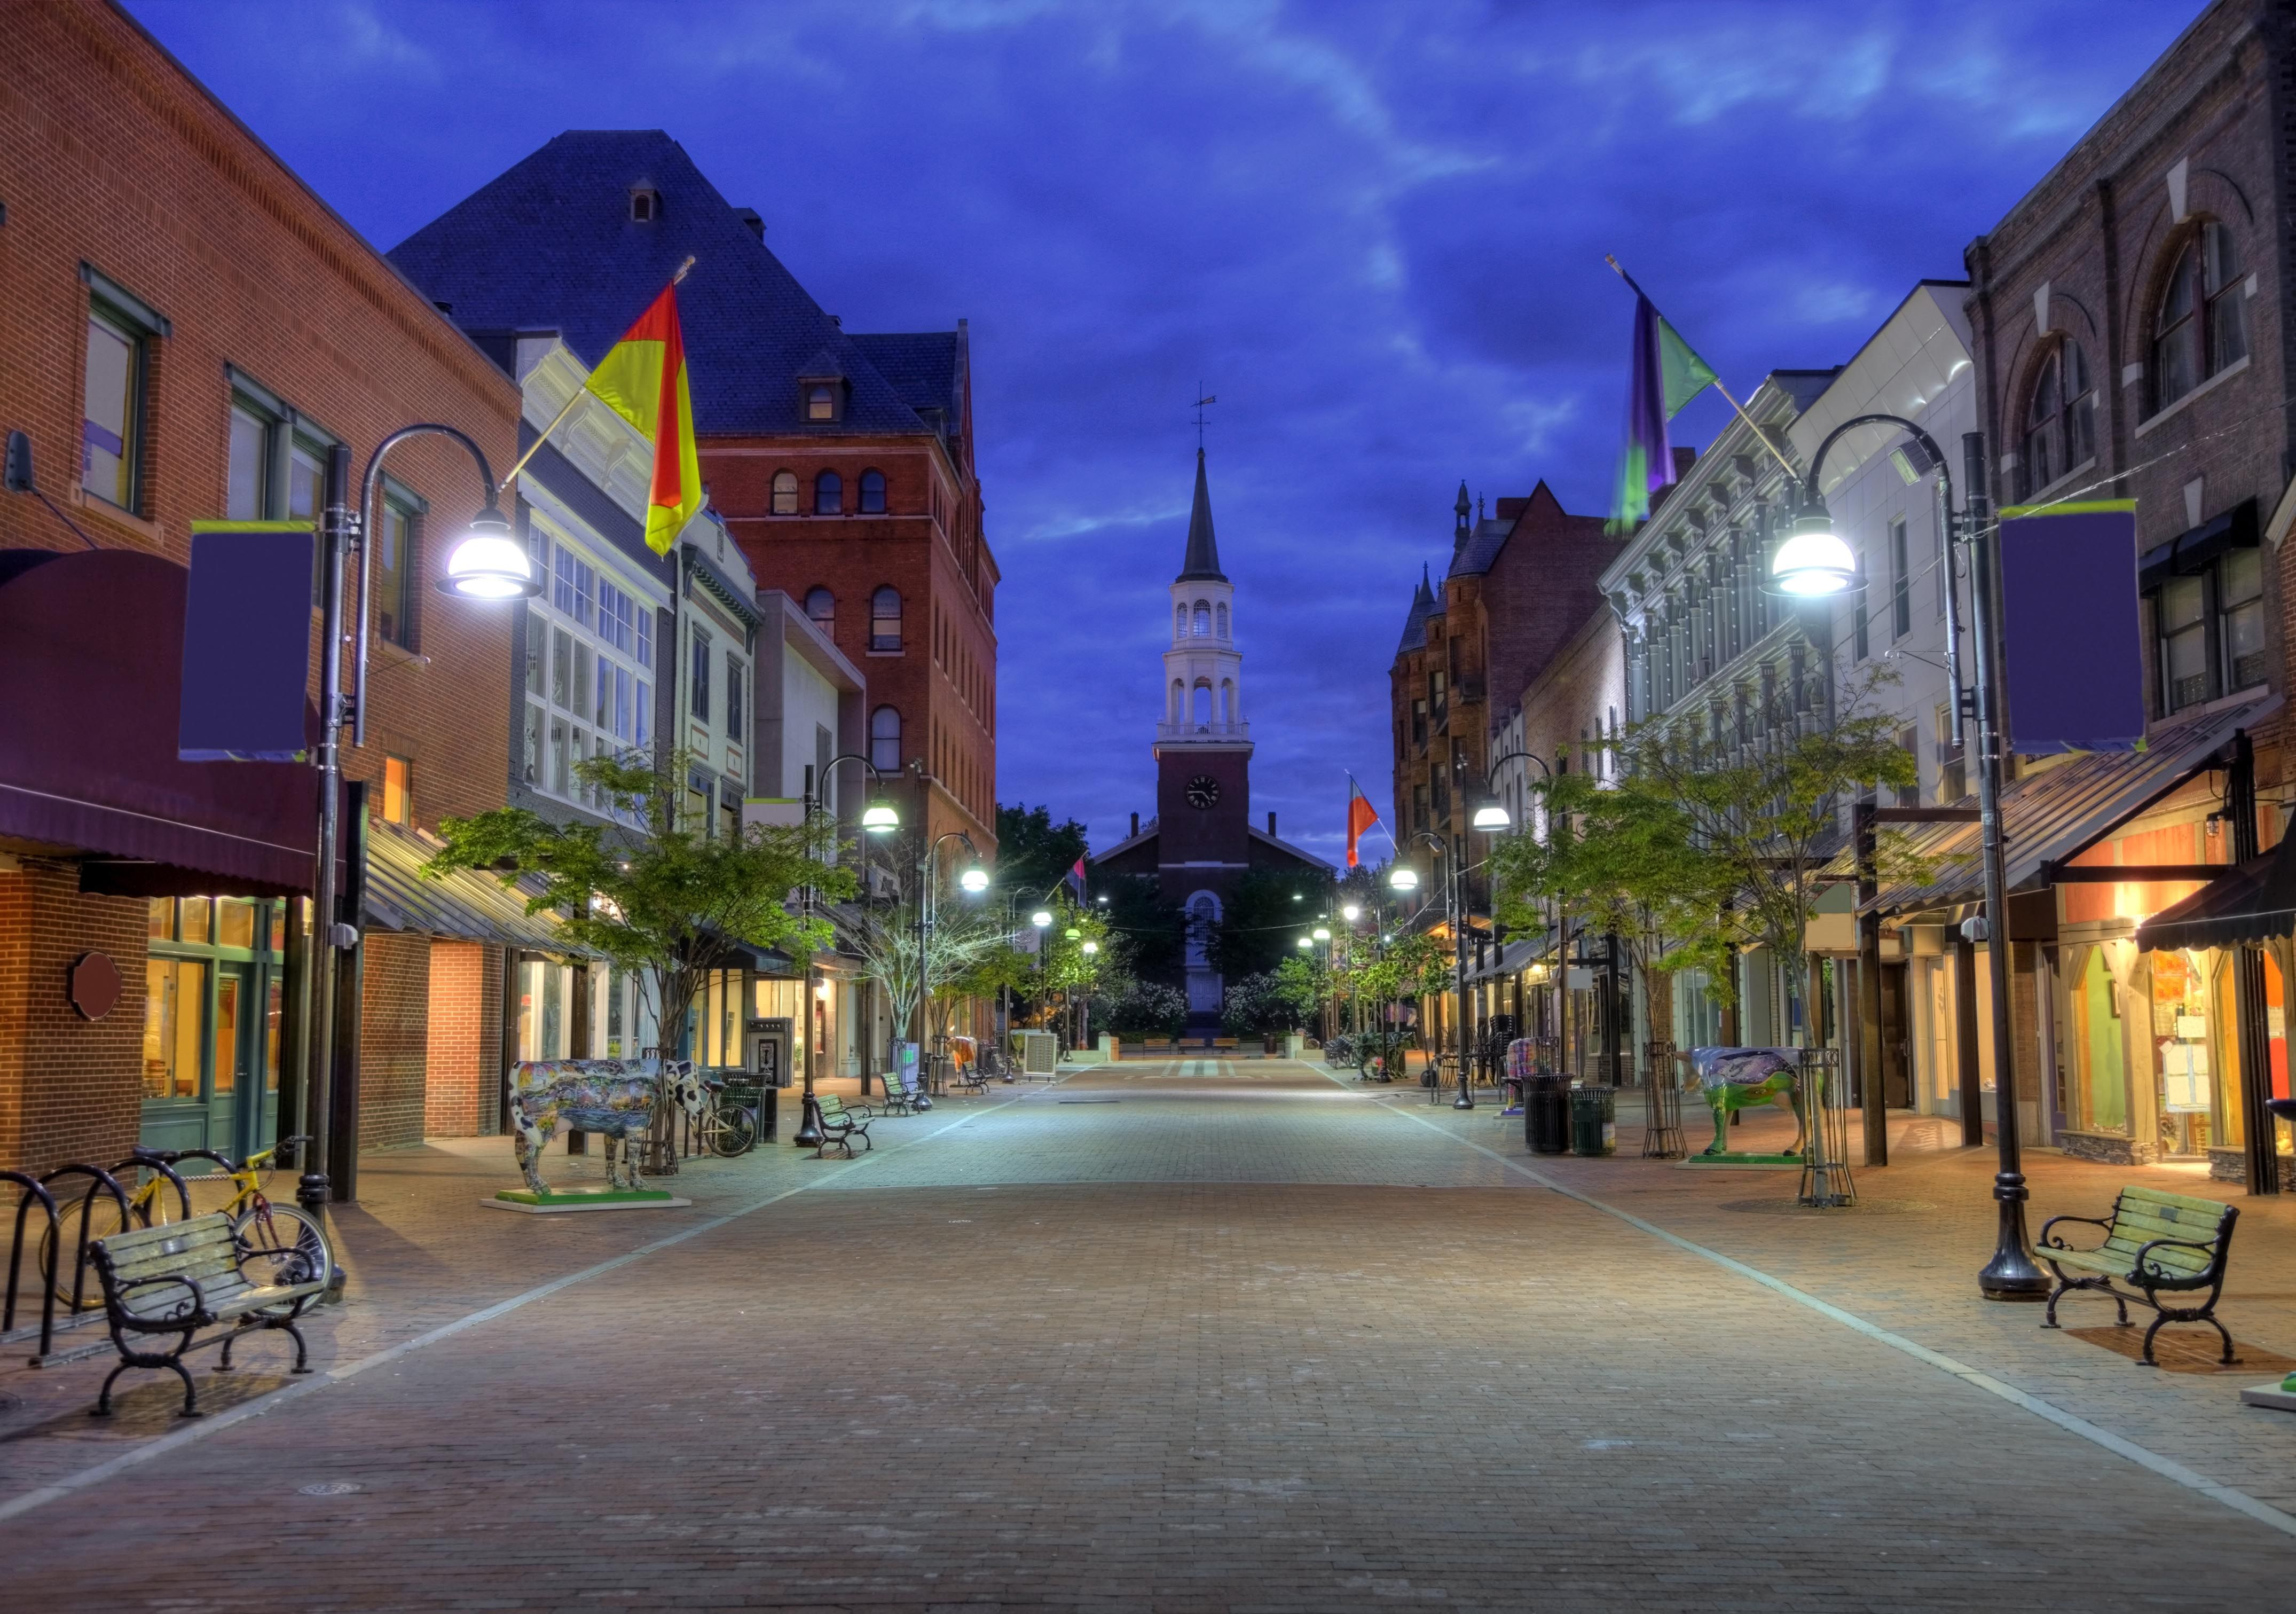 25 Happiest Small Towns in America - Happy Small Cities in